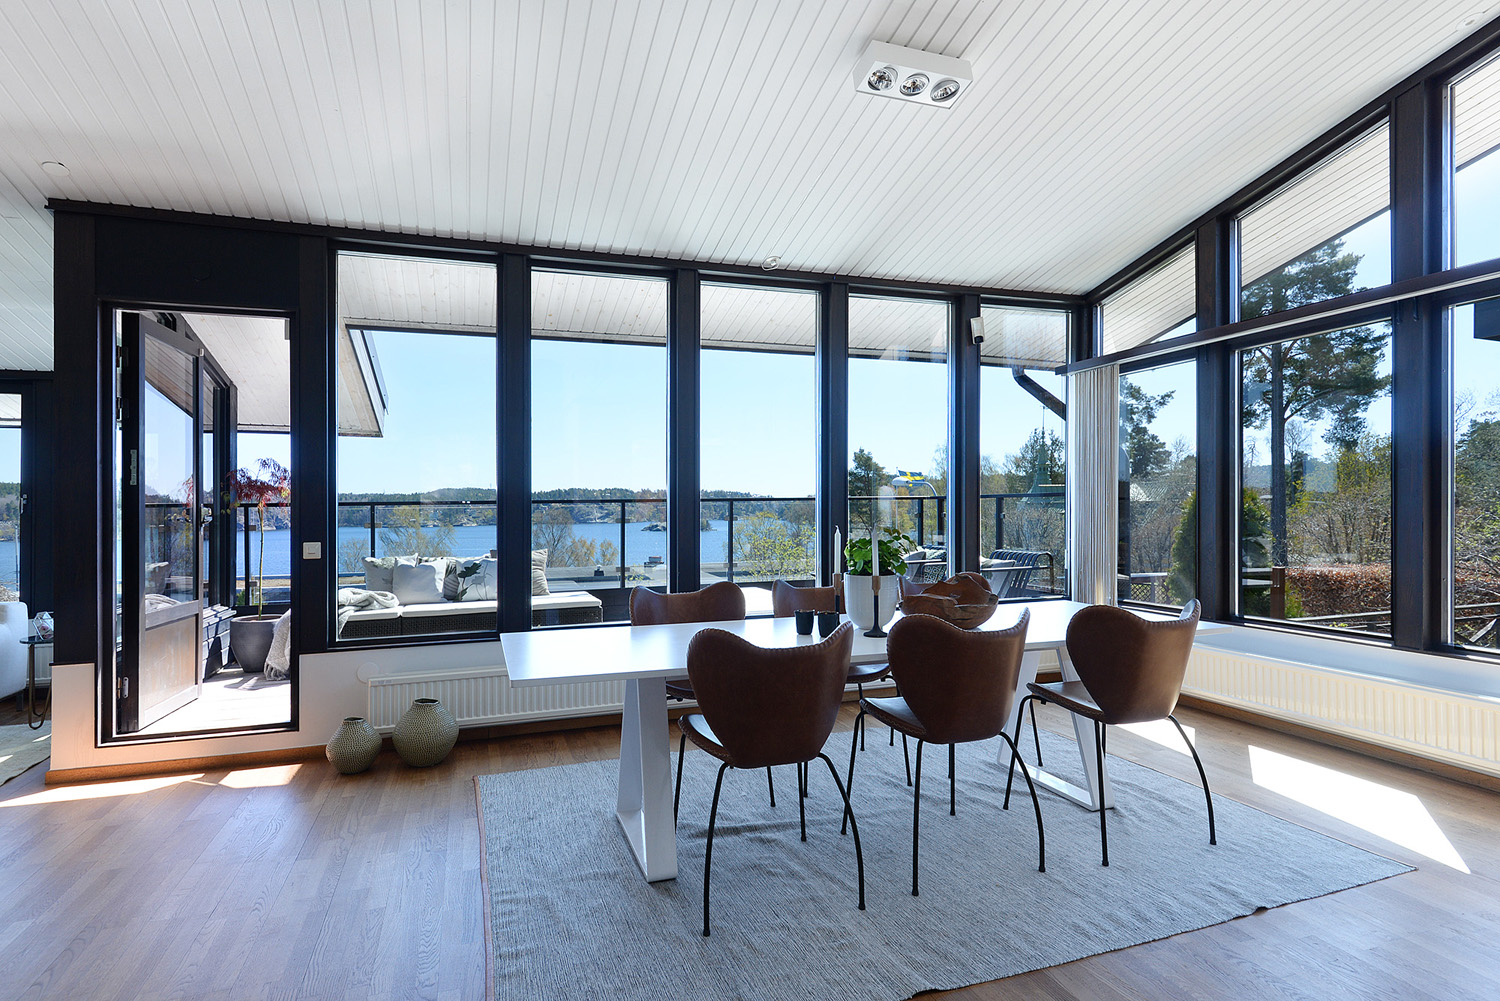 Modern Home In Sweden With Views Of The Water And